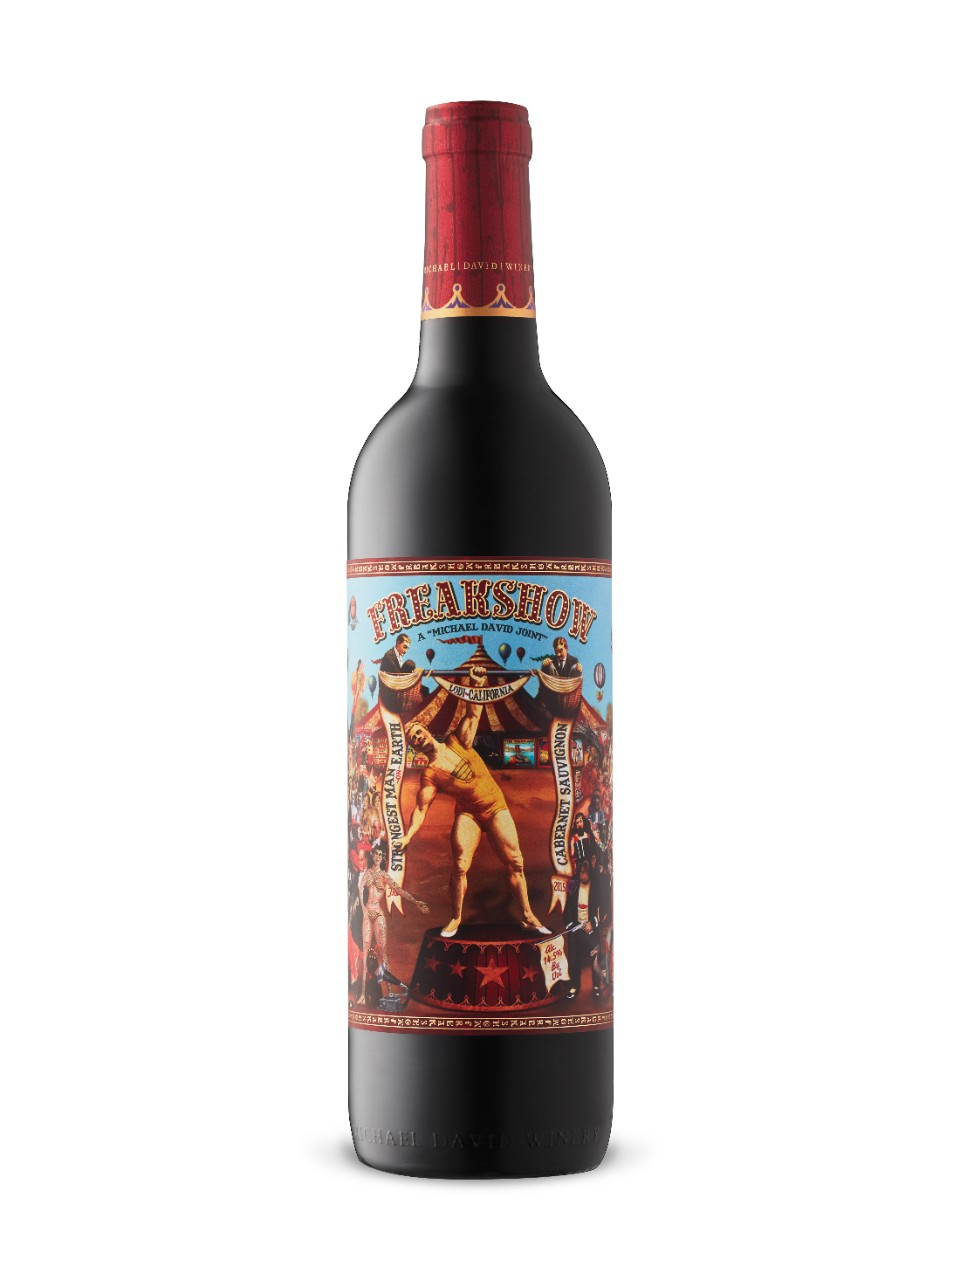 Image for Michael David Freakshow Cabernet Sauvignon 2015 from LCBO